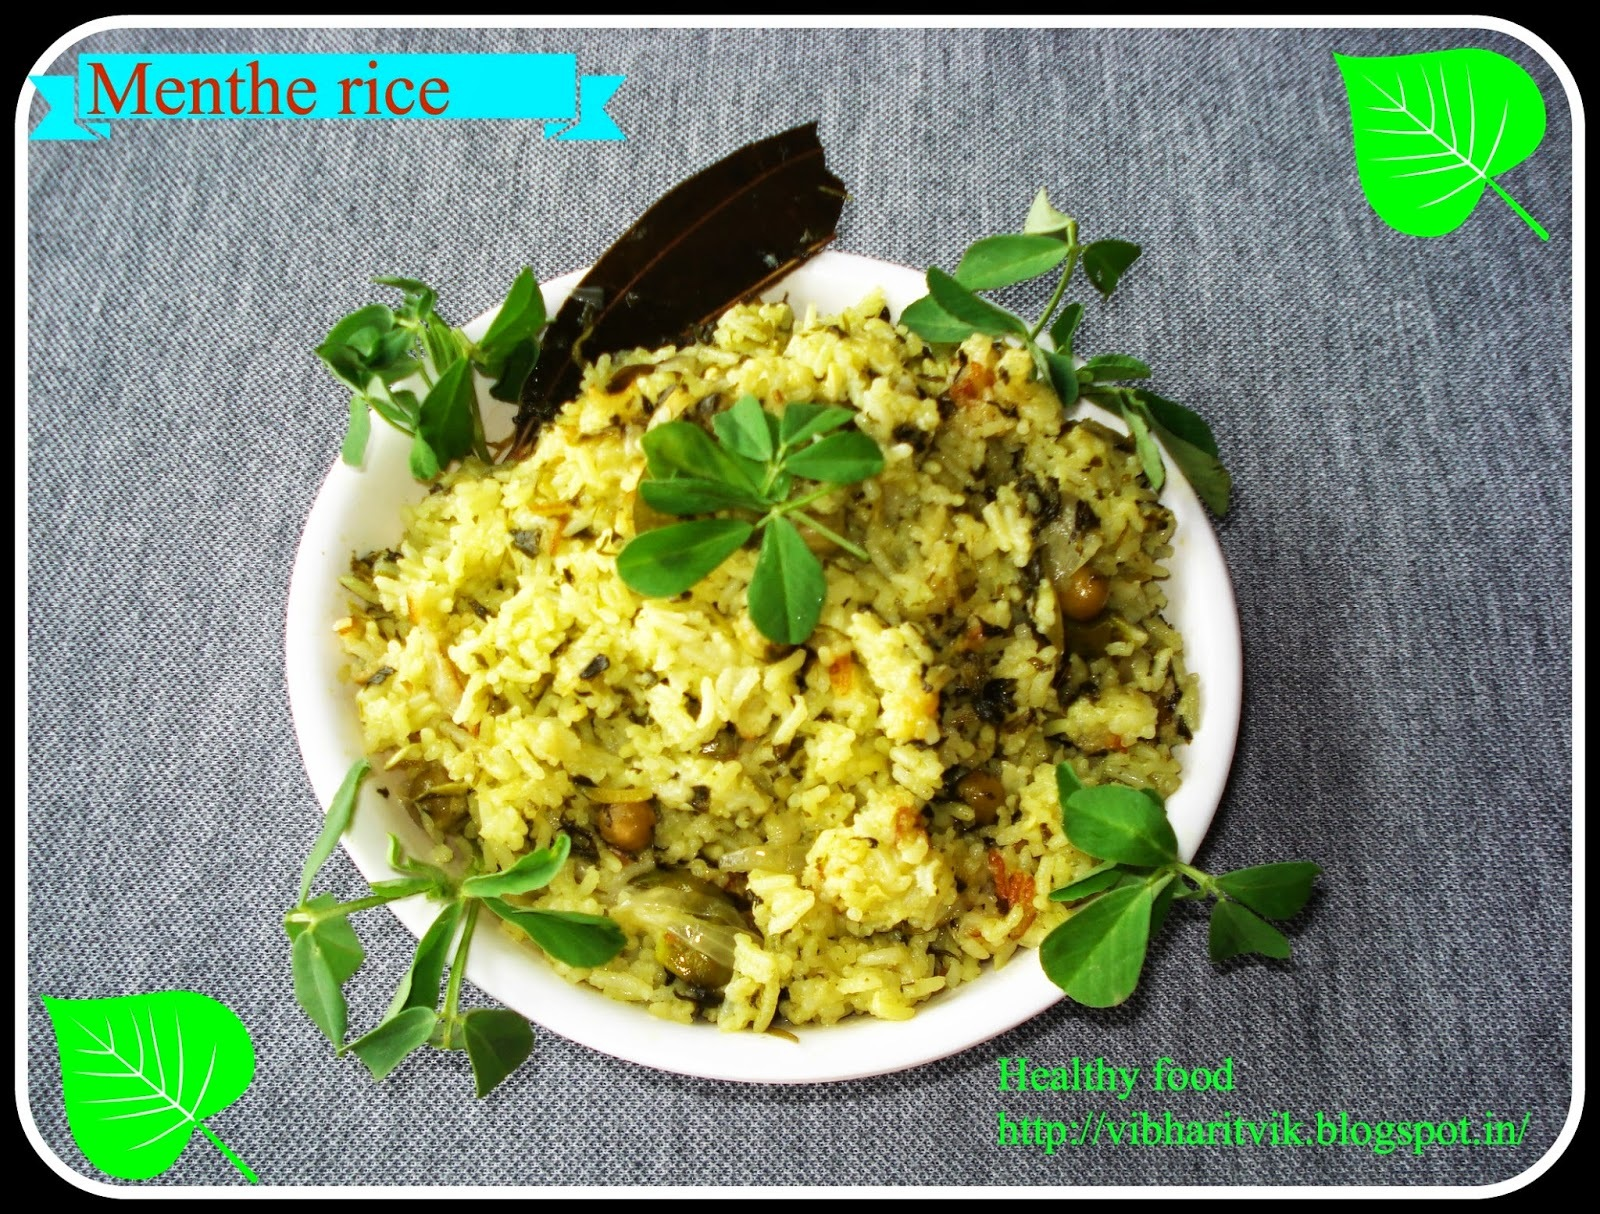 MENTHE RICE / FENUGREEK LEAVES RICE